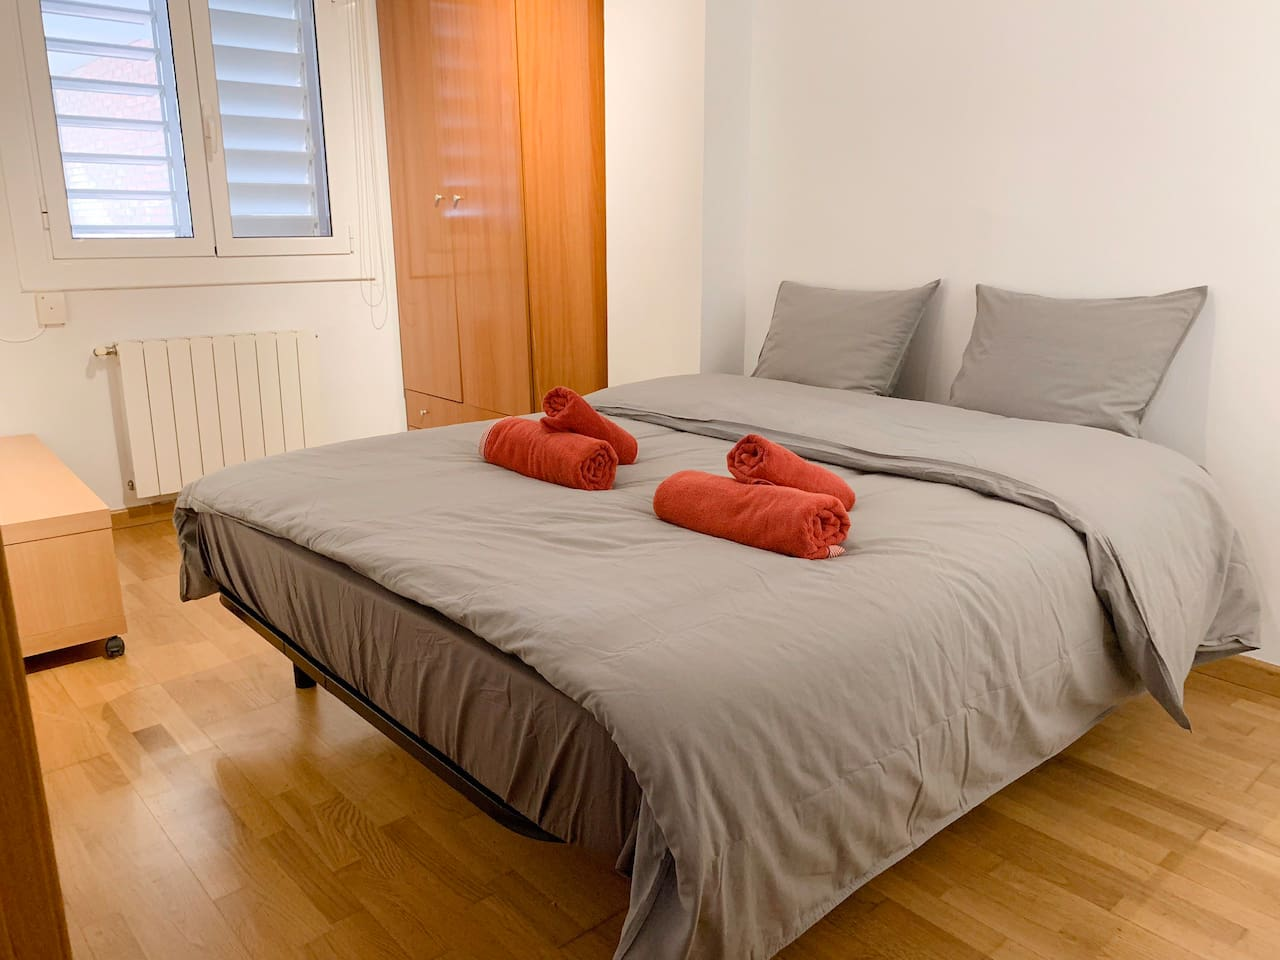 Bed size 150x190cm